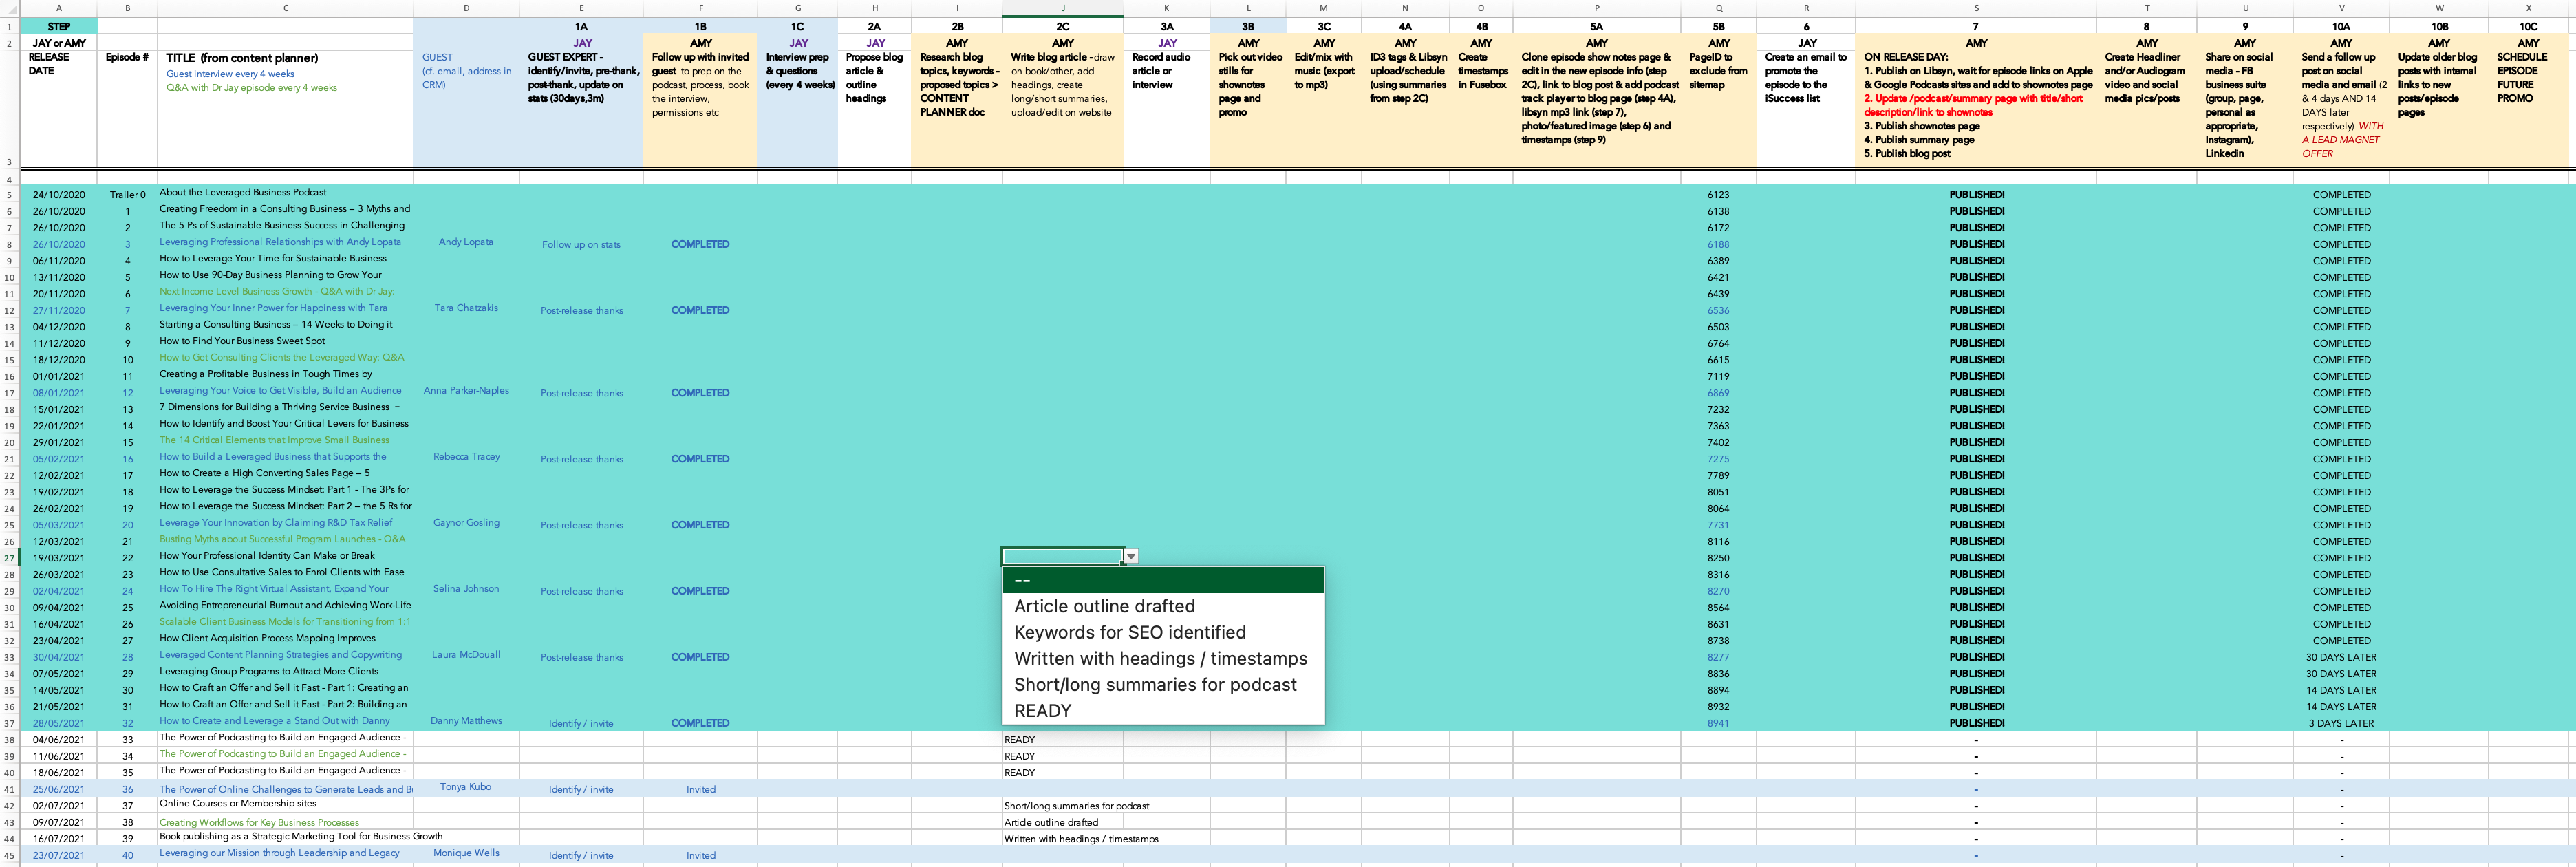 podcast production planning workflow spreadsheet screenshot